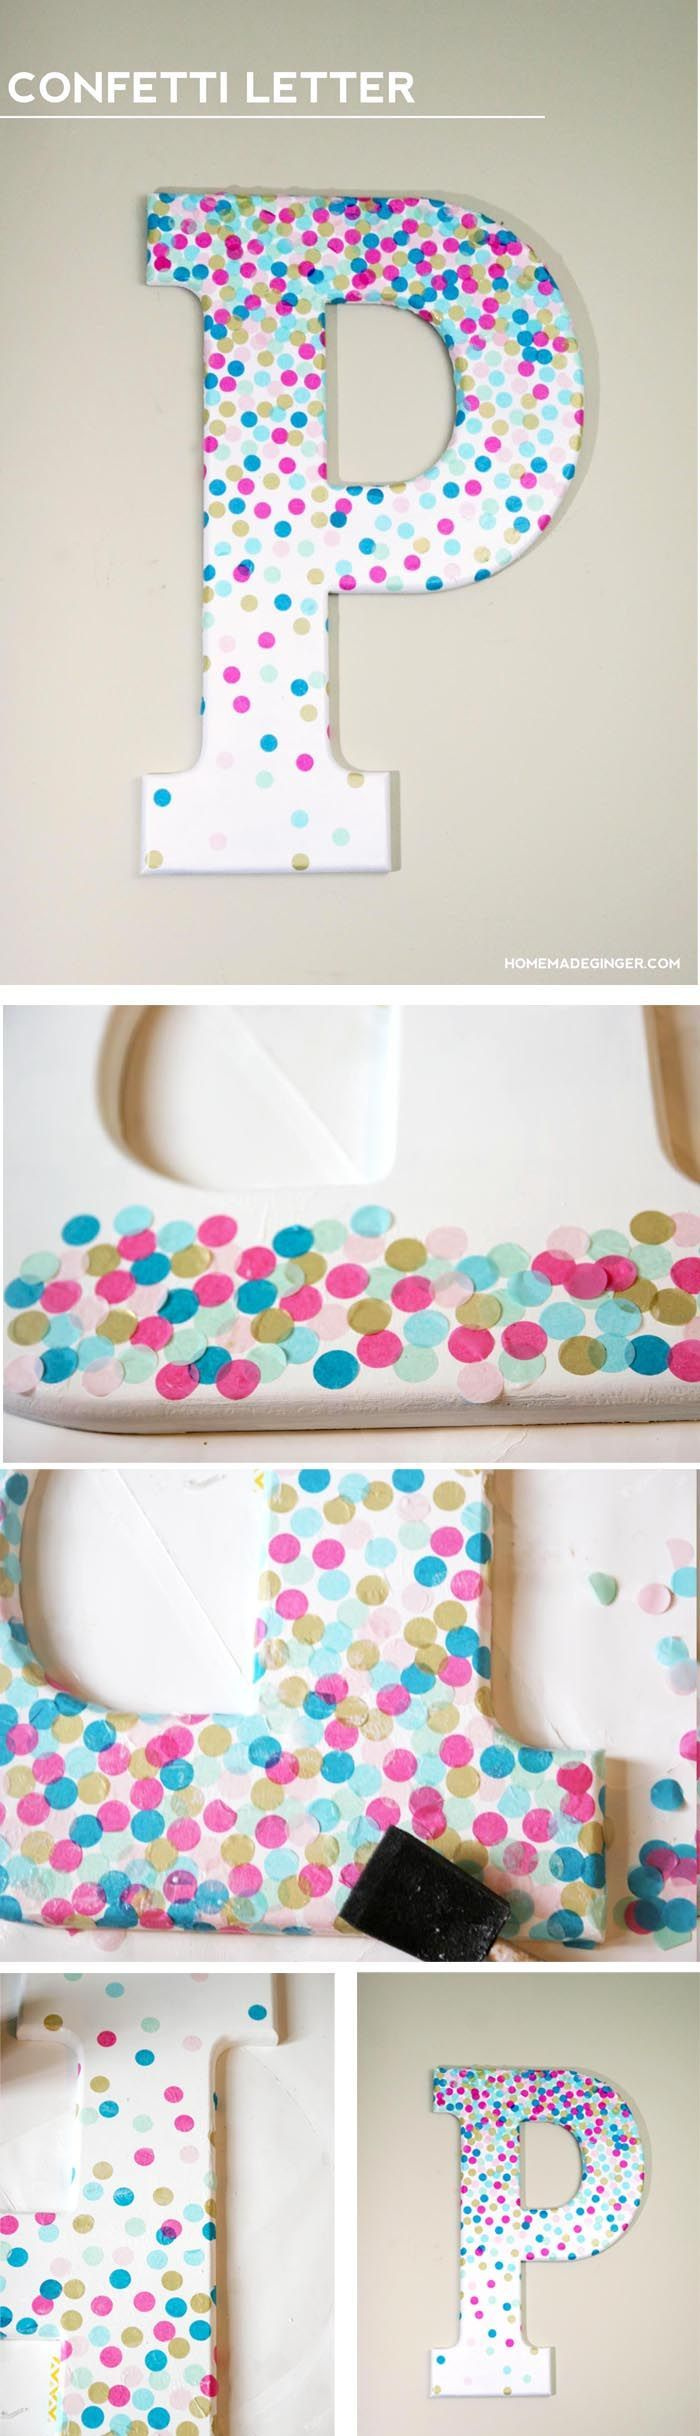 Diy wall art confetti letter paper confetti large for Homemade wall letters